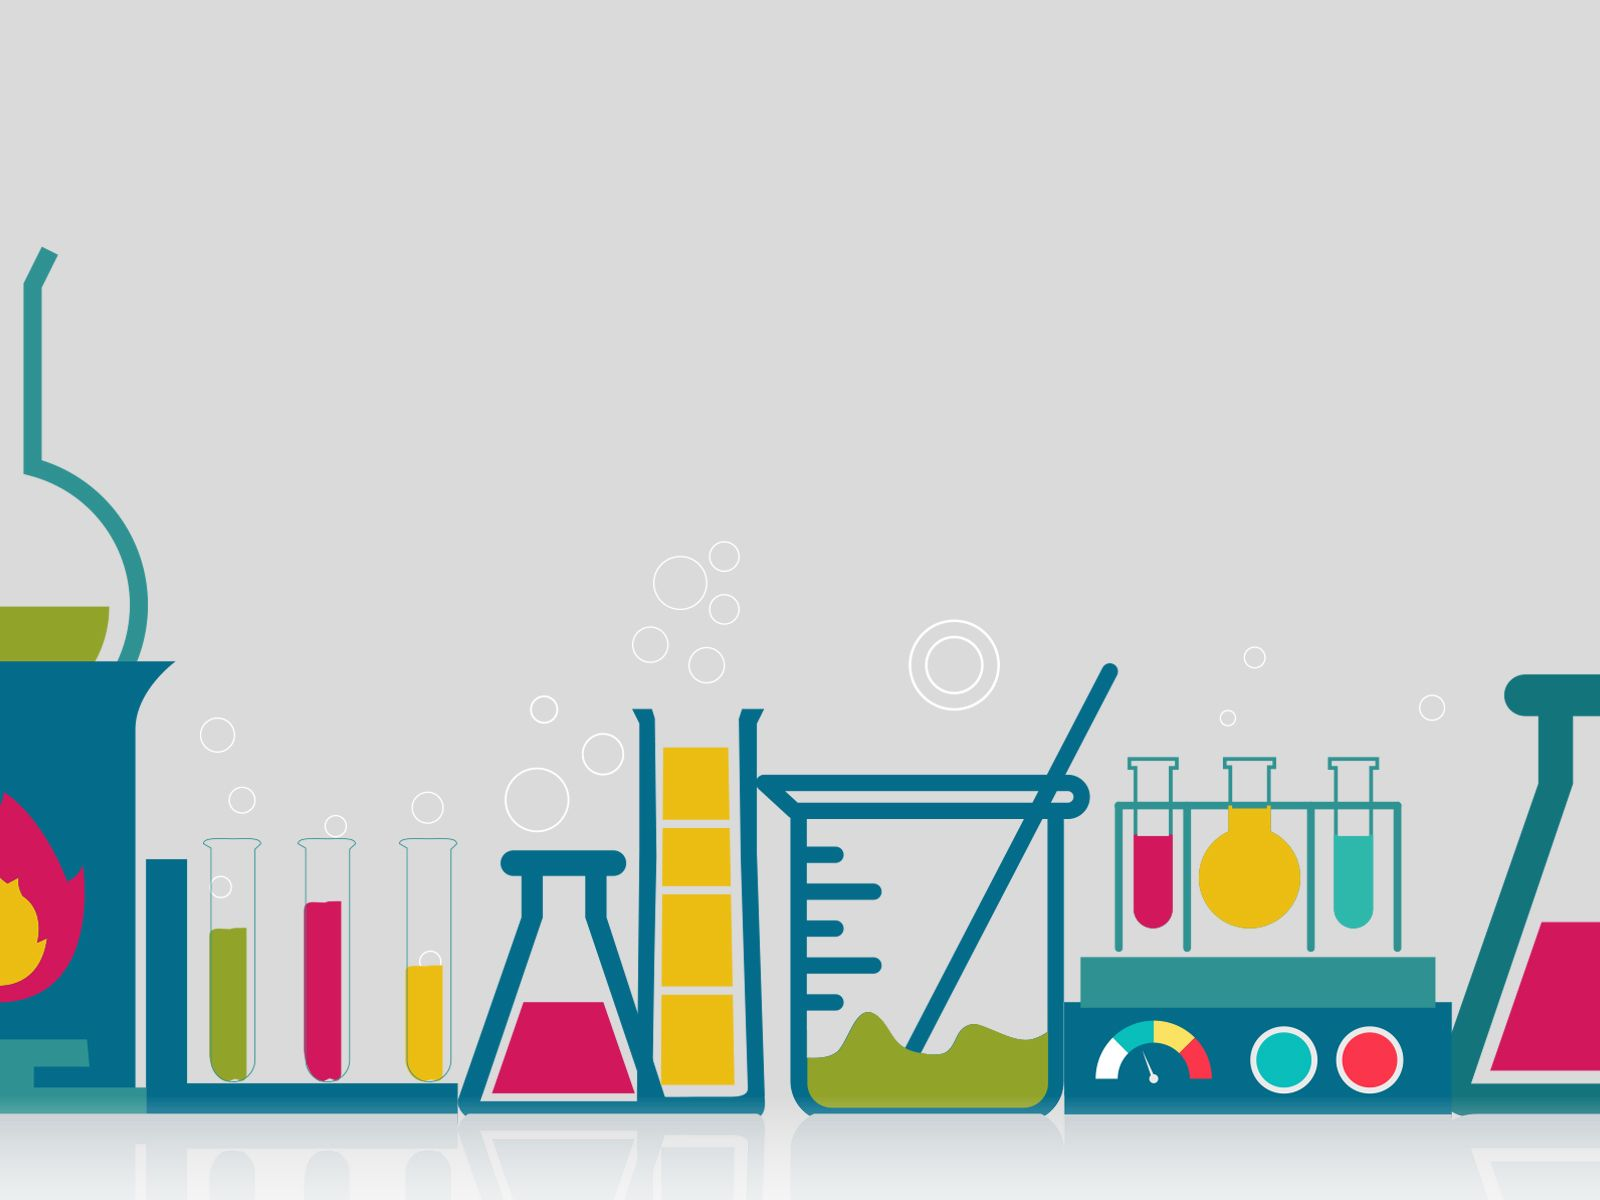 This Chemistry powerpoint background is a simple design.